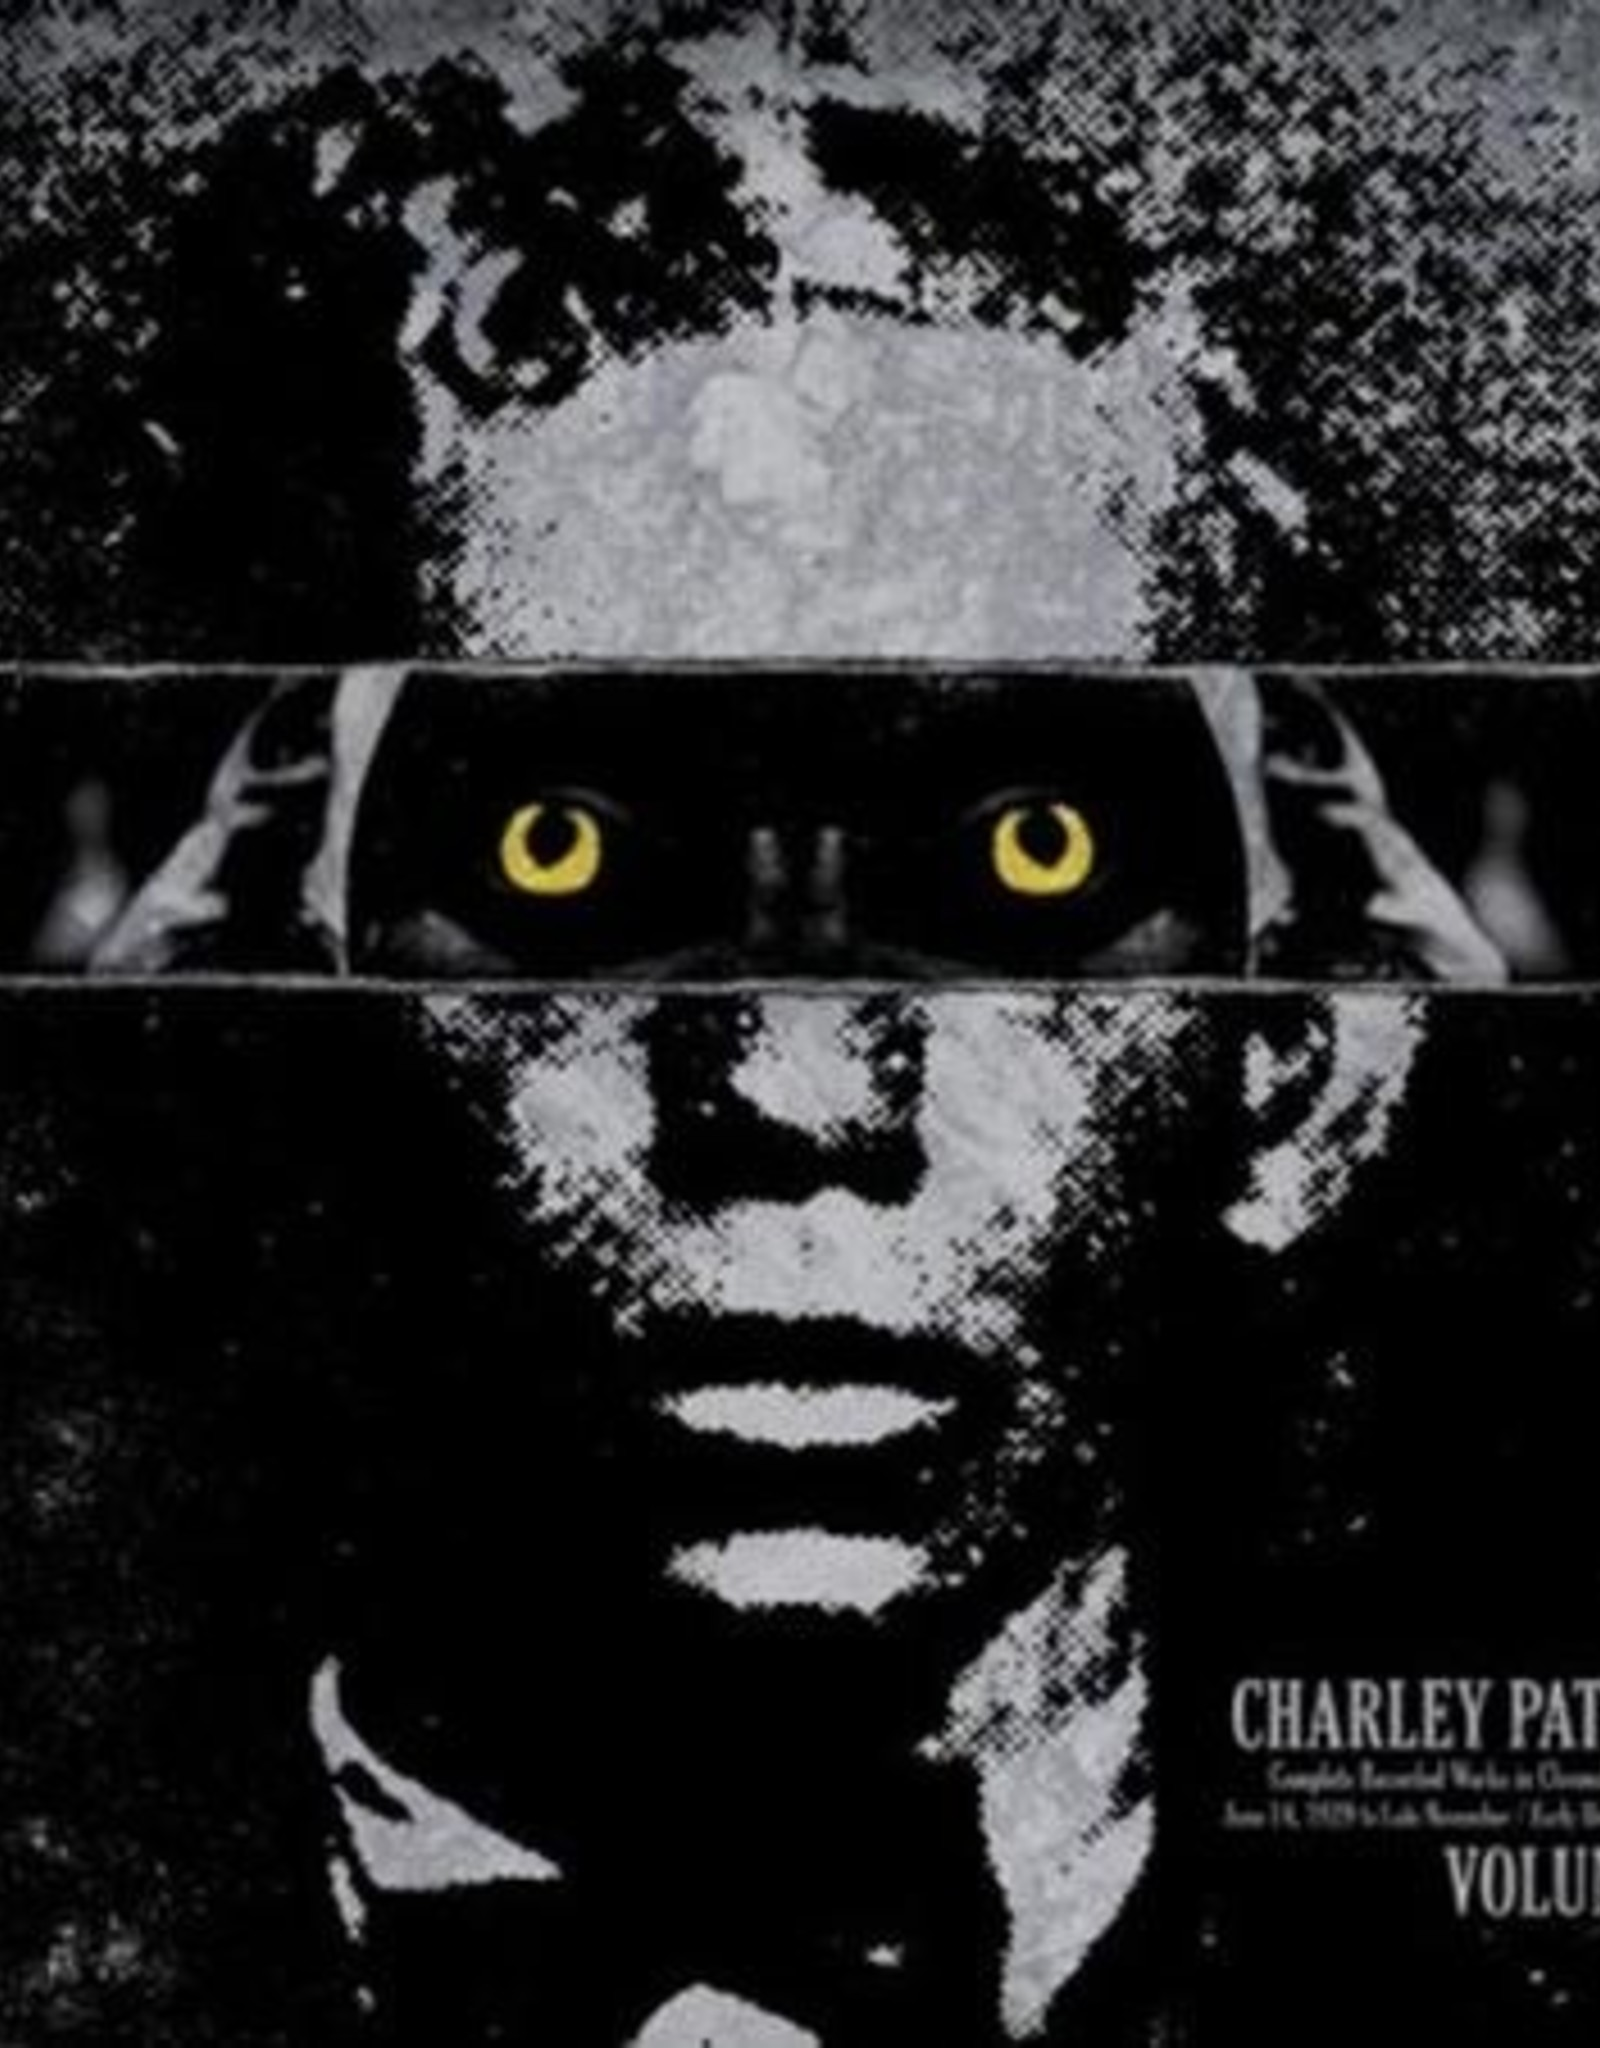 "Charley Patton - The Complete Recorded Works In Chronological Order Volume 1 (12"" Vinyl)"